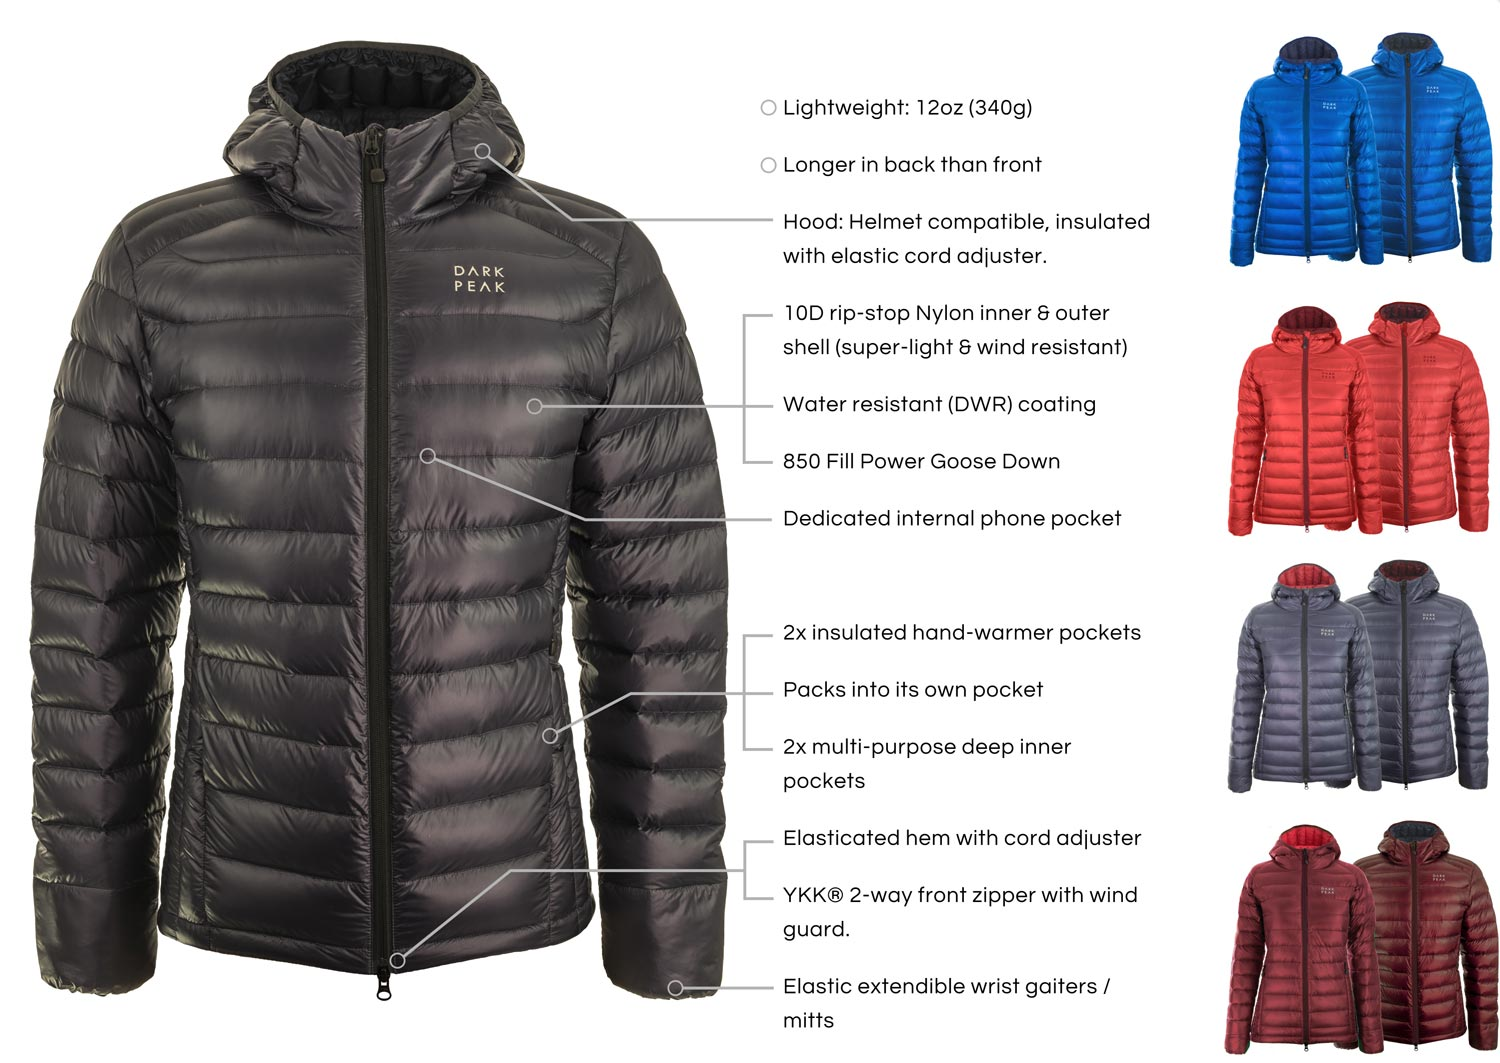 Technical Specs for the Nessh Down Jacket